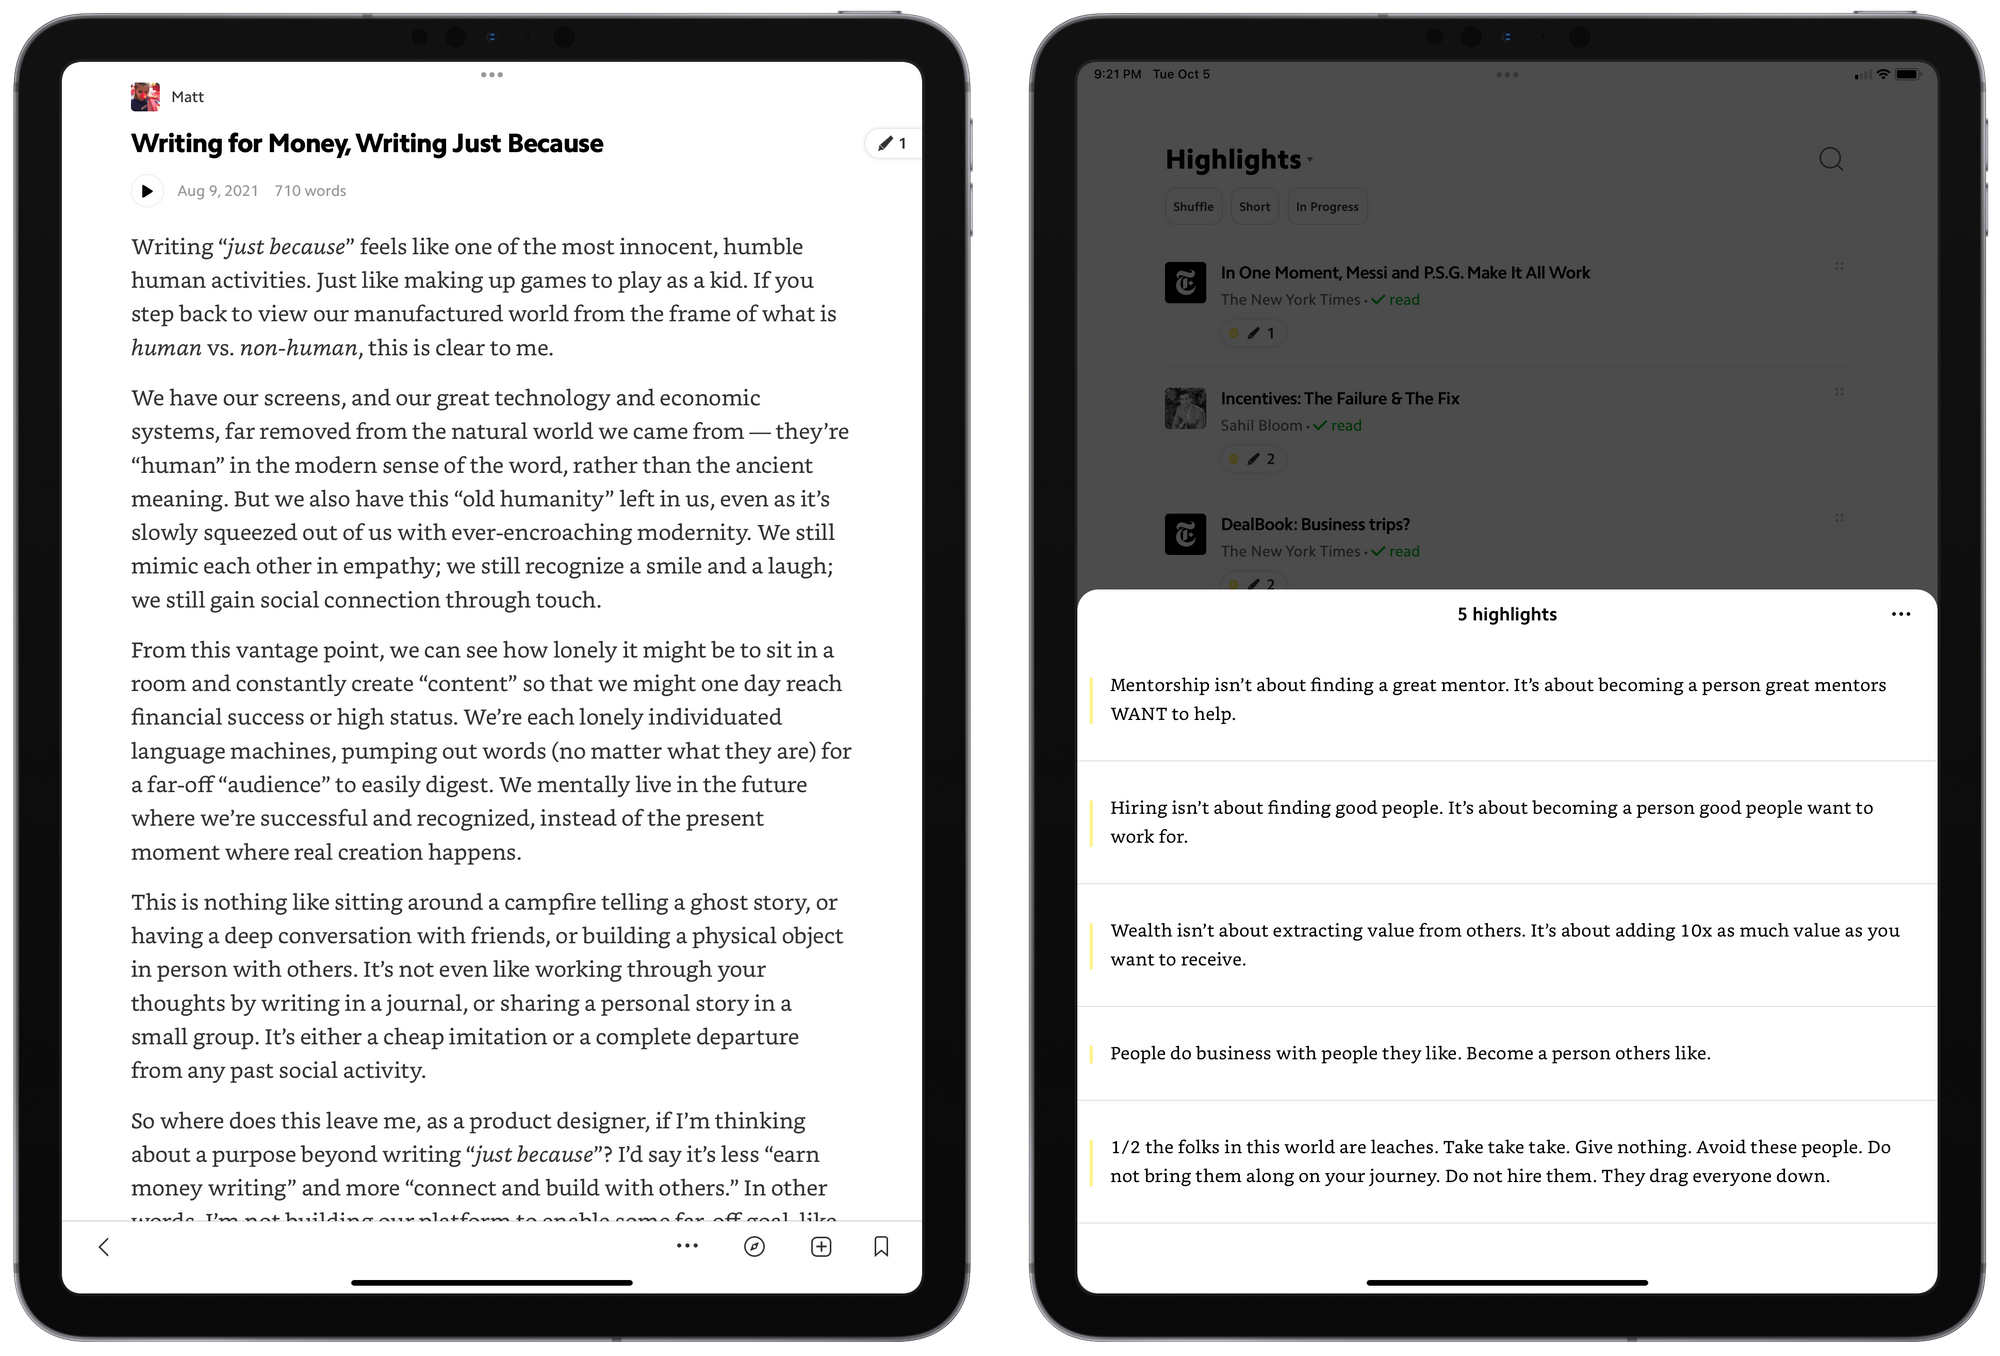 Matter has one of my favourite designs of any app in a long, long time. The app is a joy to use and has uncovered loads of great writing to enjoy.